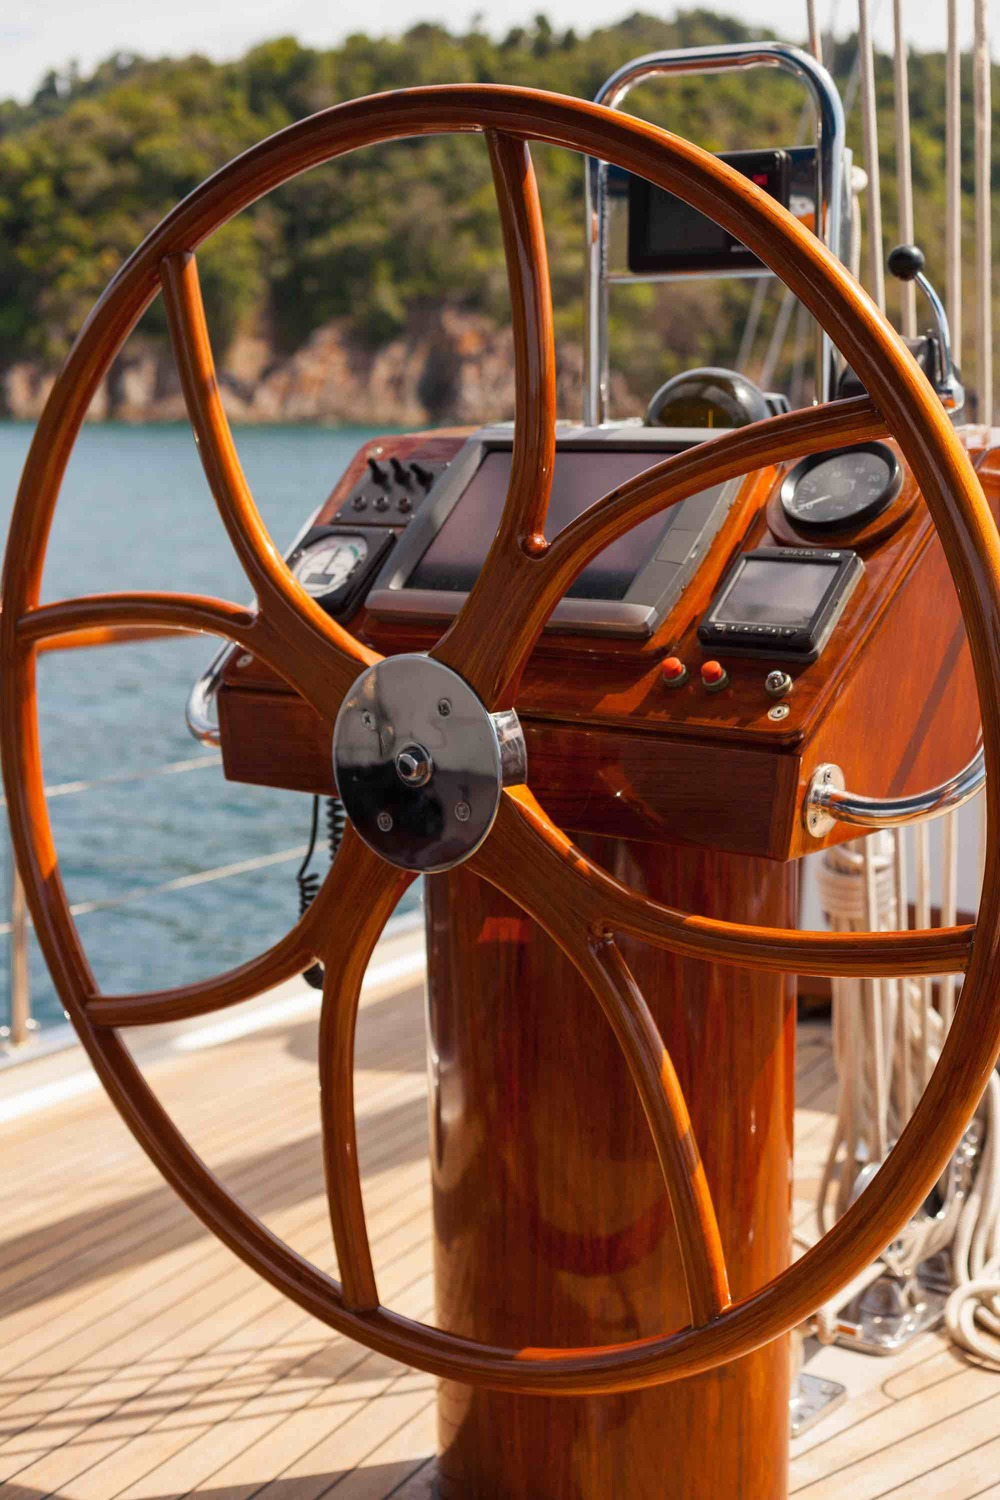 Jubilaeum_steering wheel on deck sailing in Mergui Islands_XS.jpeg